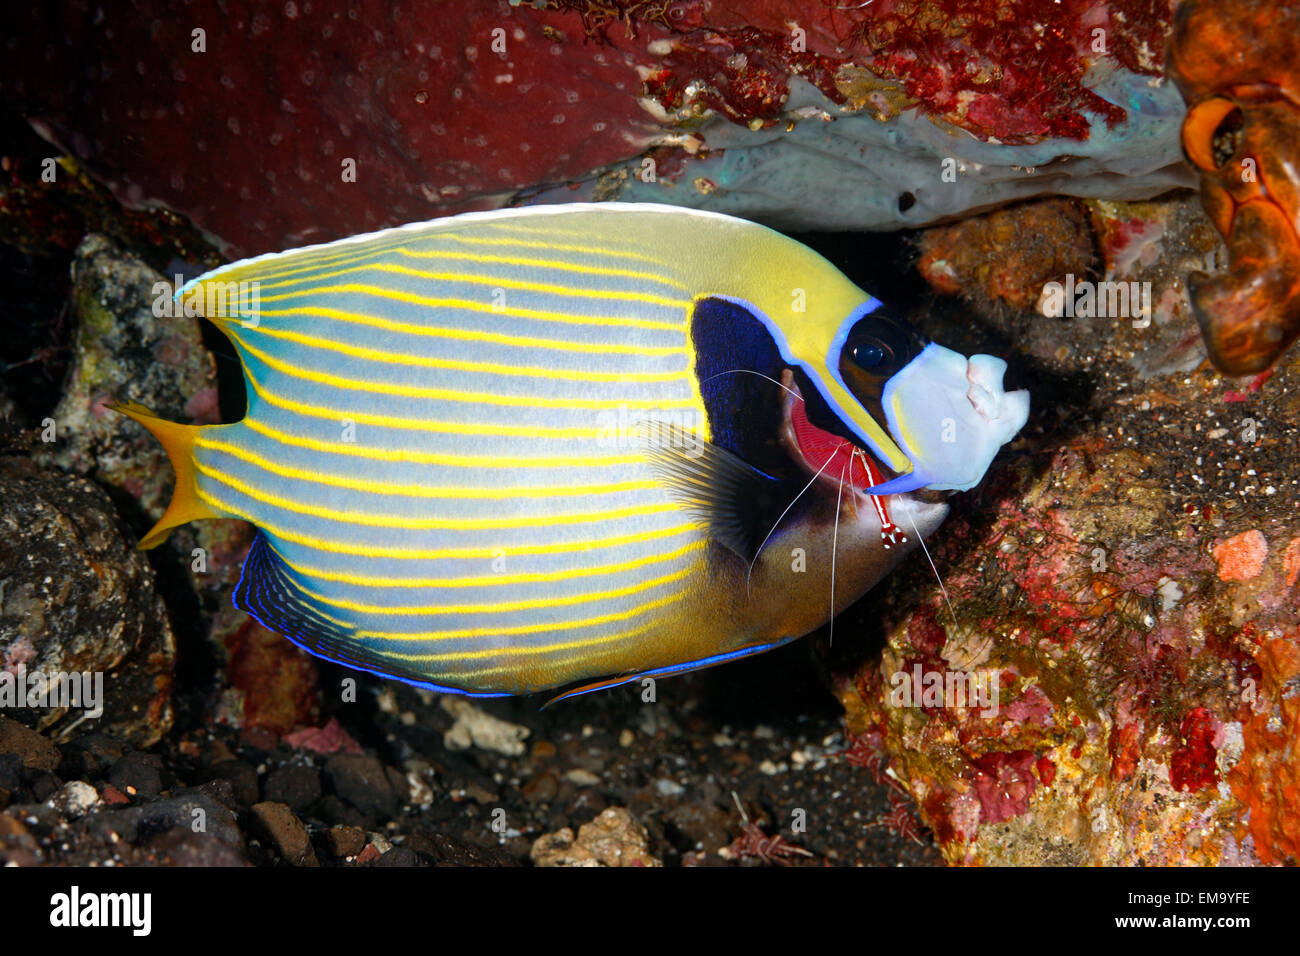 an-emperor-angelfish-pomacanthus-imperat